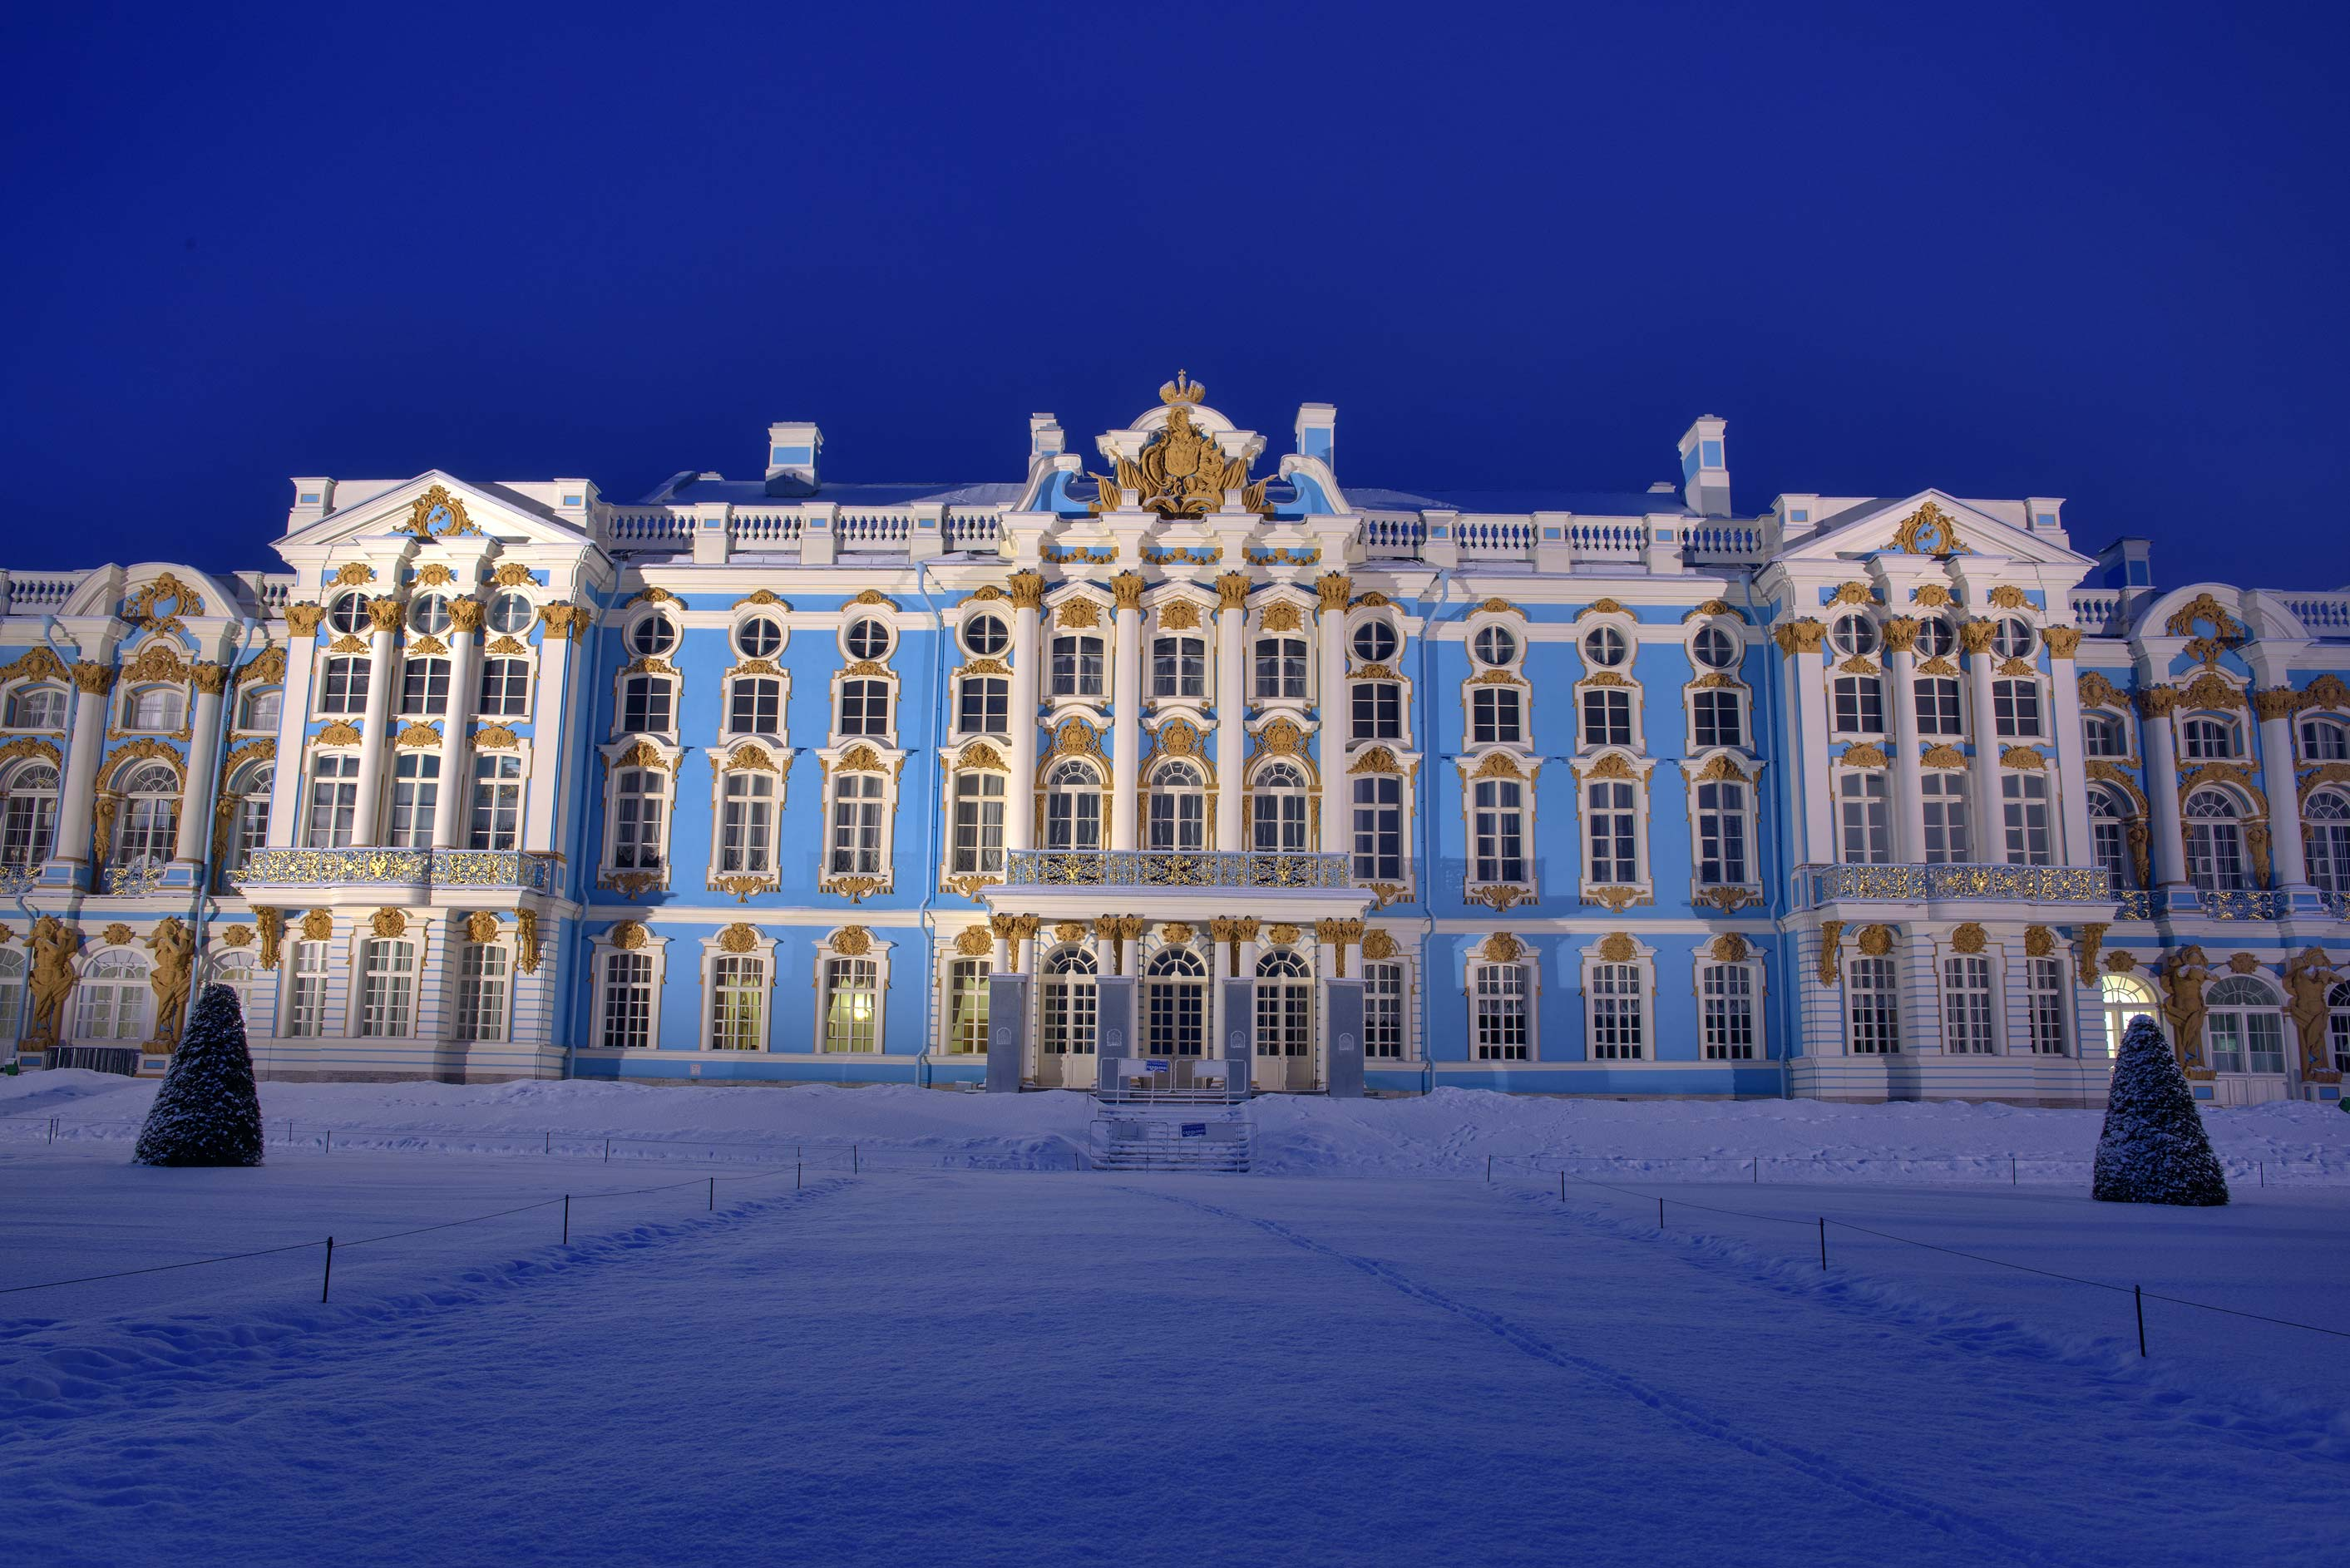 Grand Palace in Catherine Park. Pushkin (former Tsarskoe Selo) near St.Petersburg, Russia